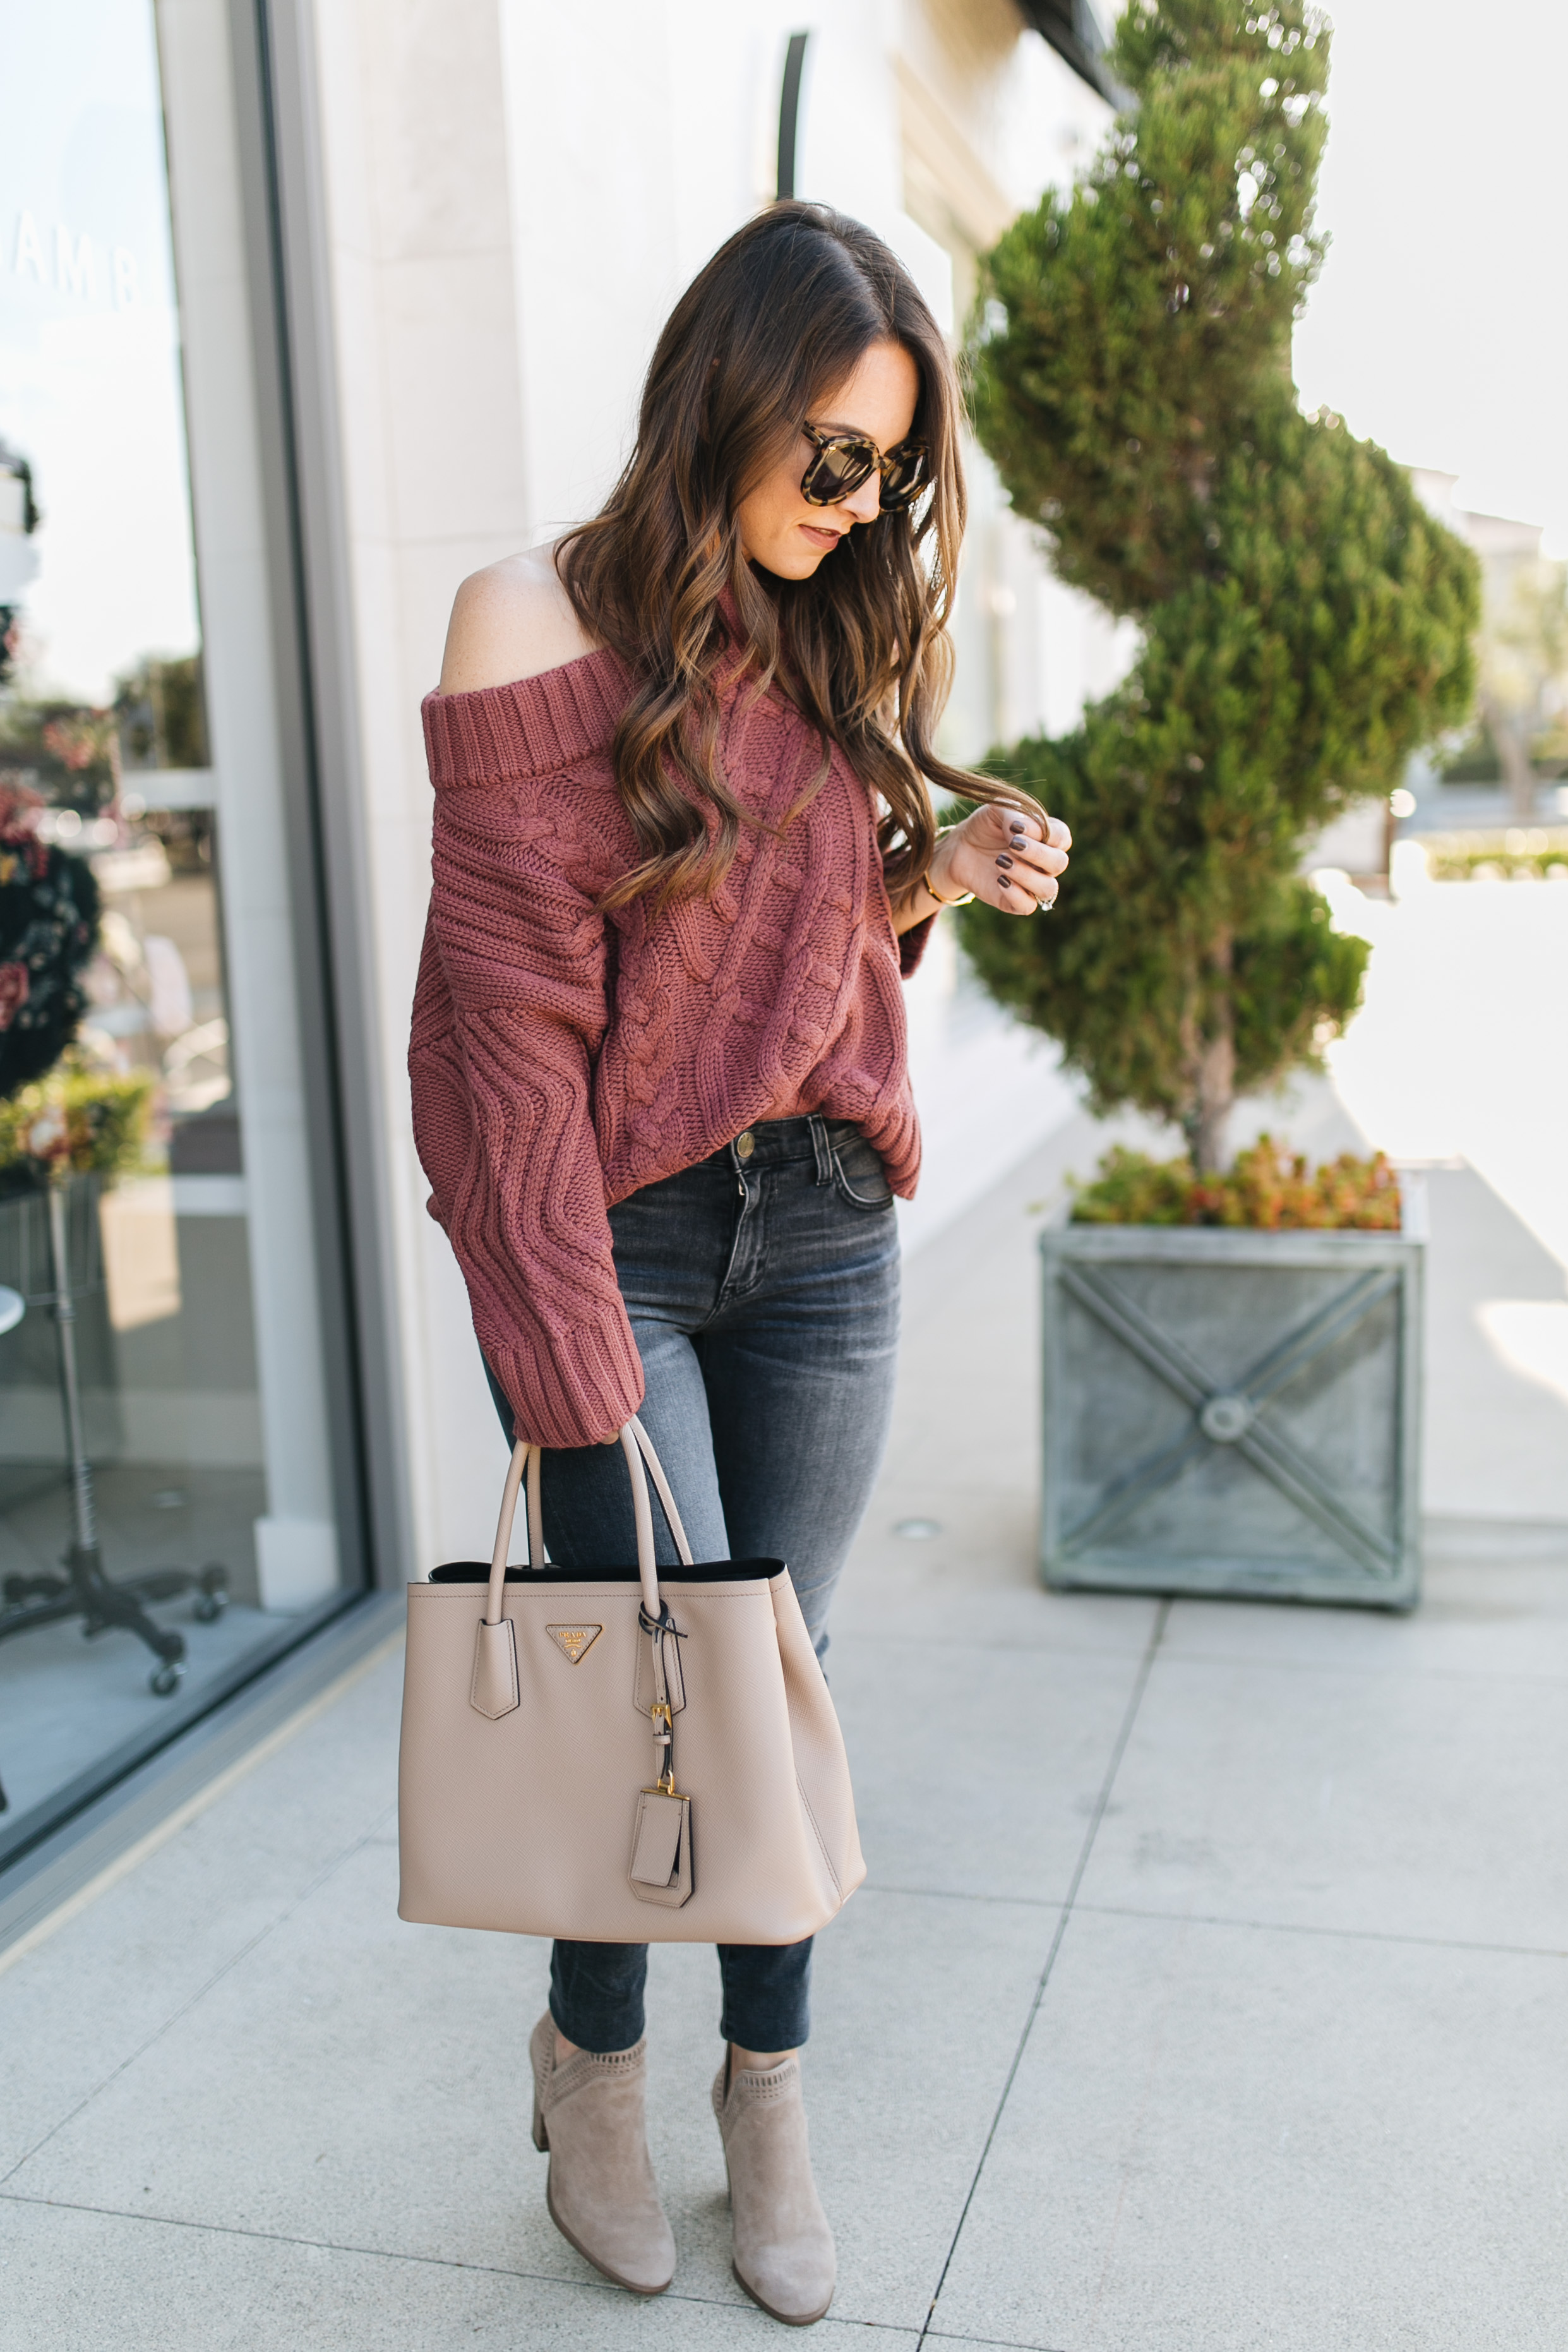 Fashion blogger daryl-ann denner styles a fall outfit with off-the-shoulder sweaters and gray jeans